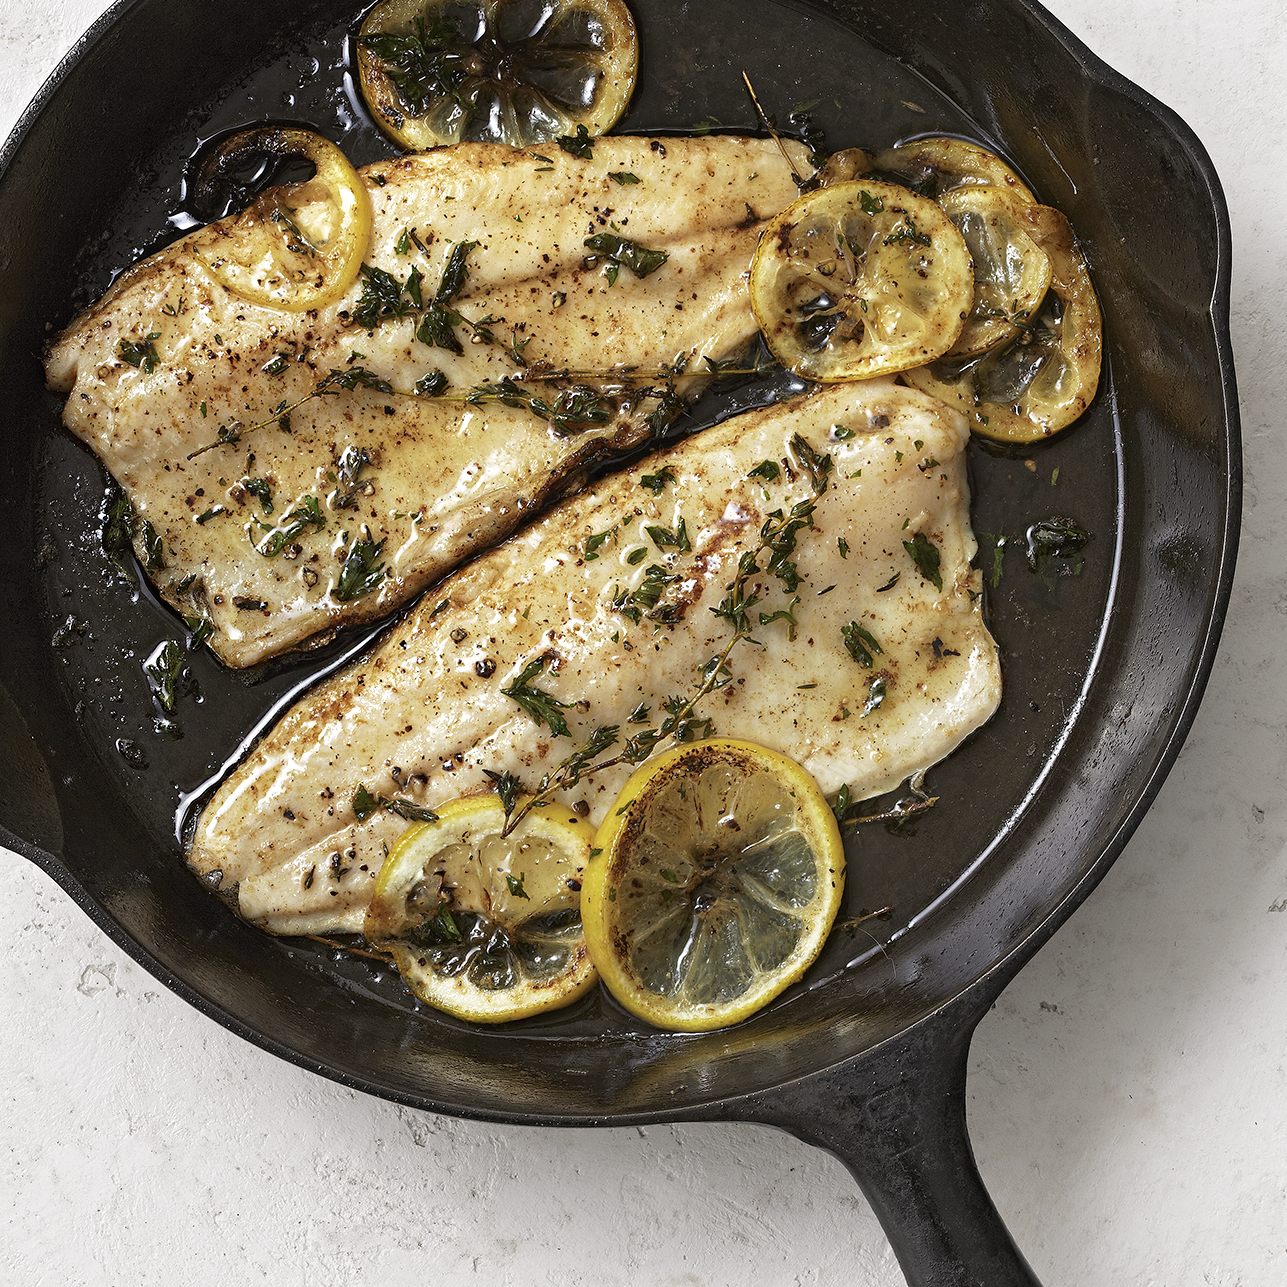 Trout with Lemon & Herbs